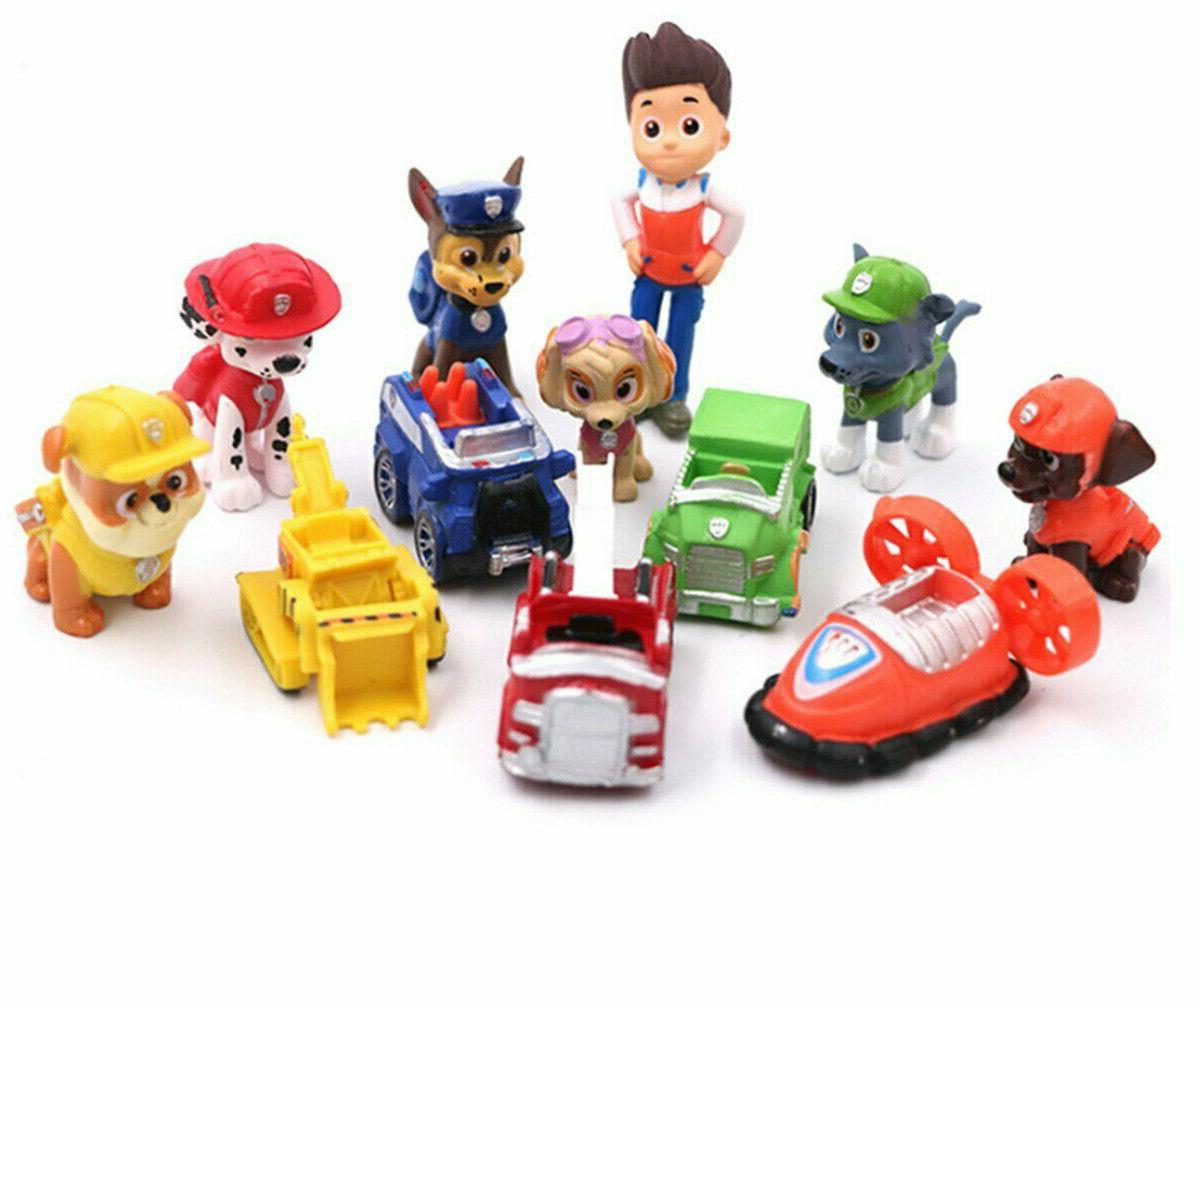 Paw Vehicles Cute Figure Topper Gift Toy